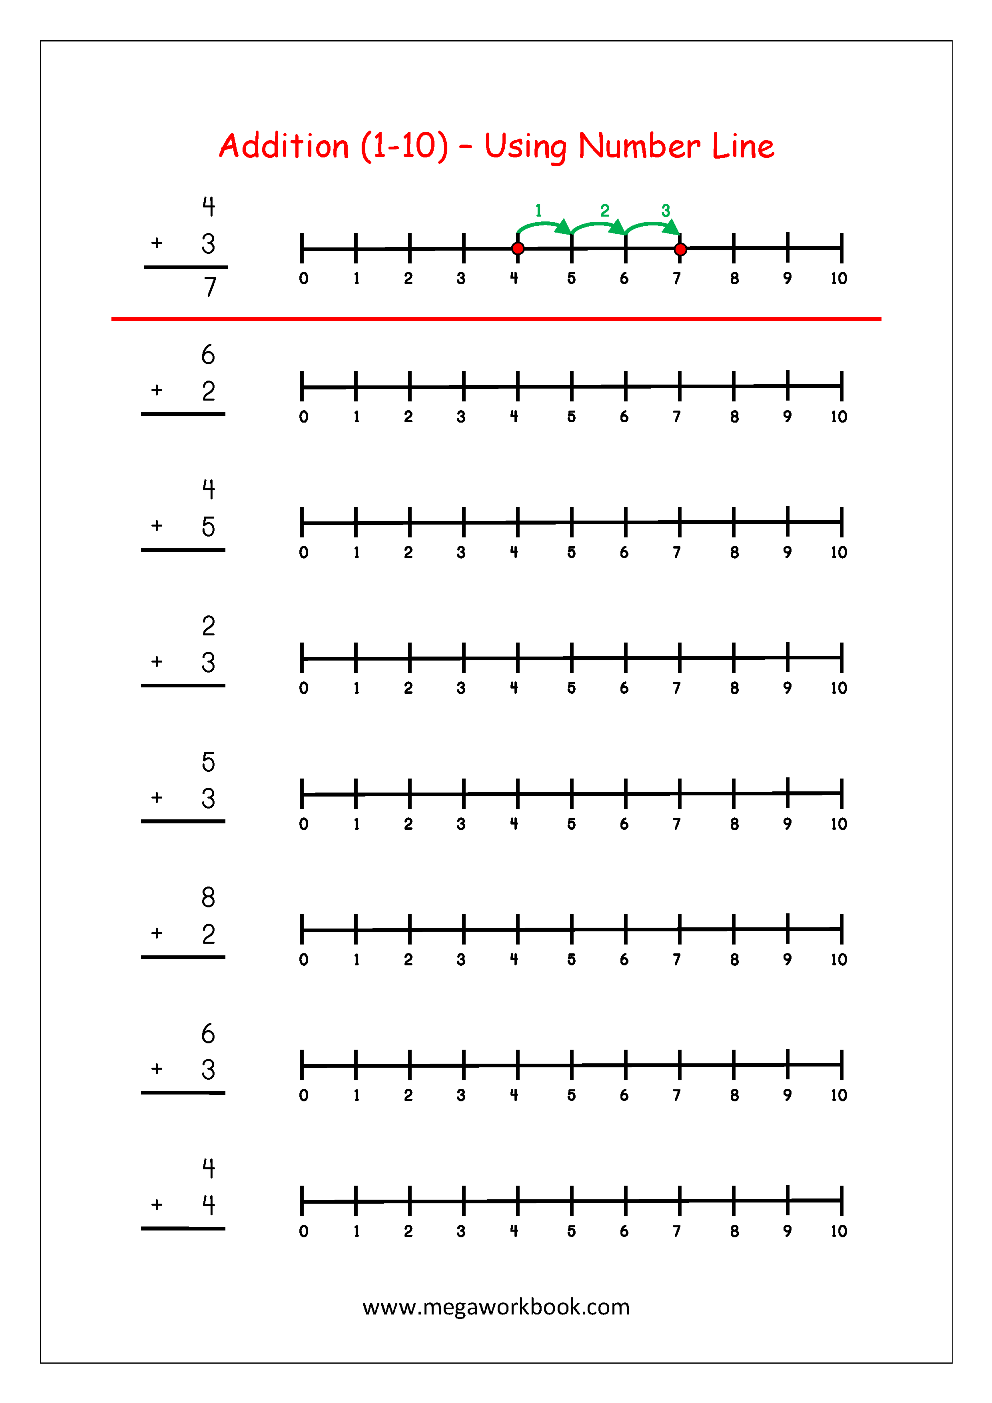 photograph relating to Printable Integers Number Line named Totally free Printable Quantity Addition Worksheets (1-10) For